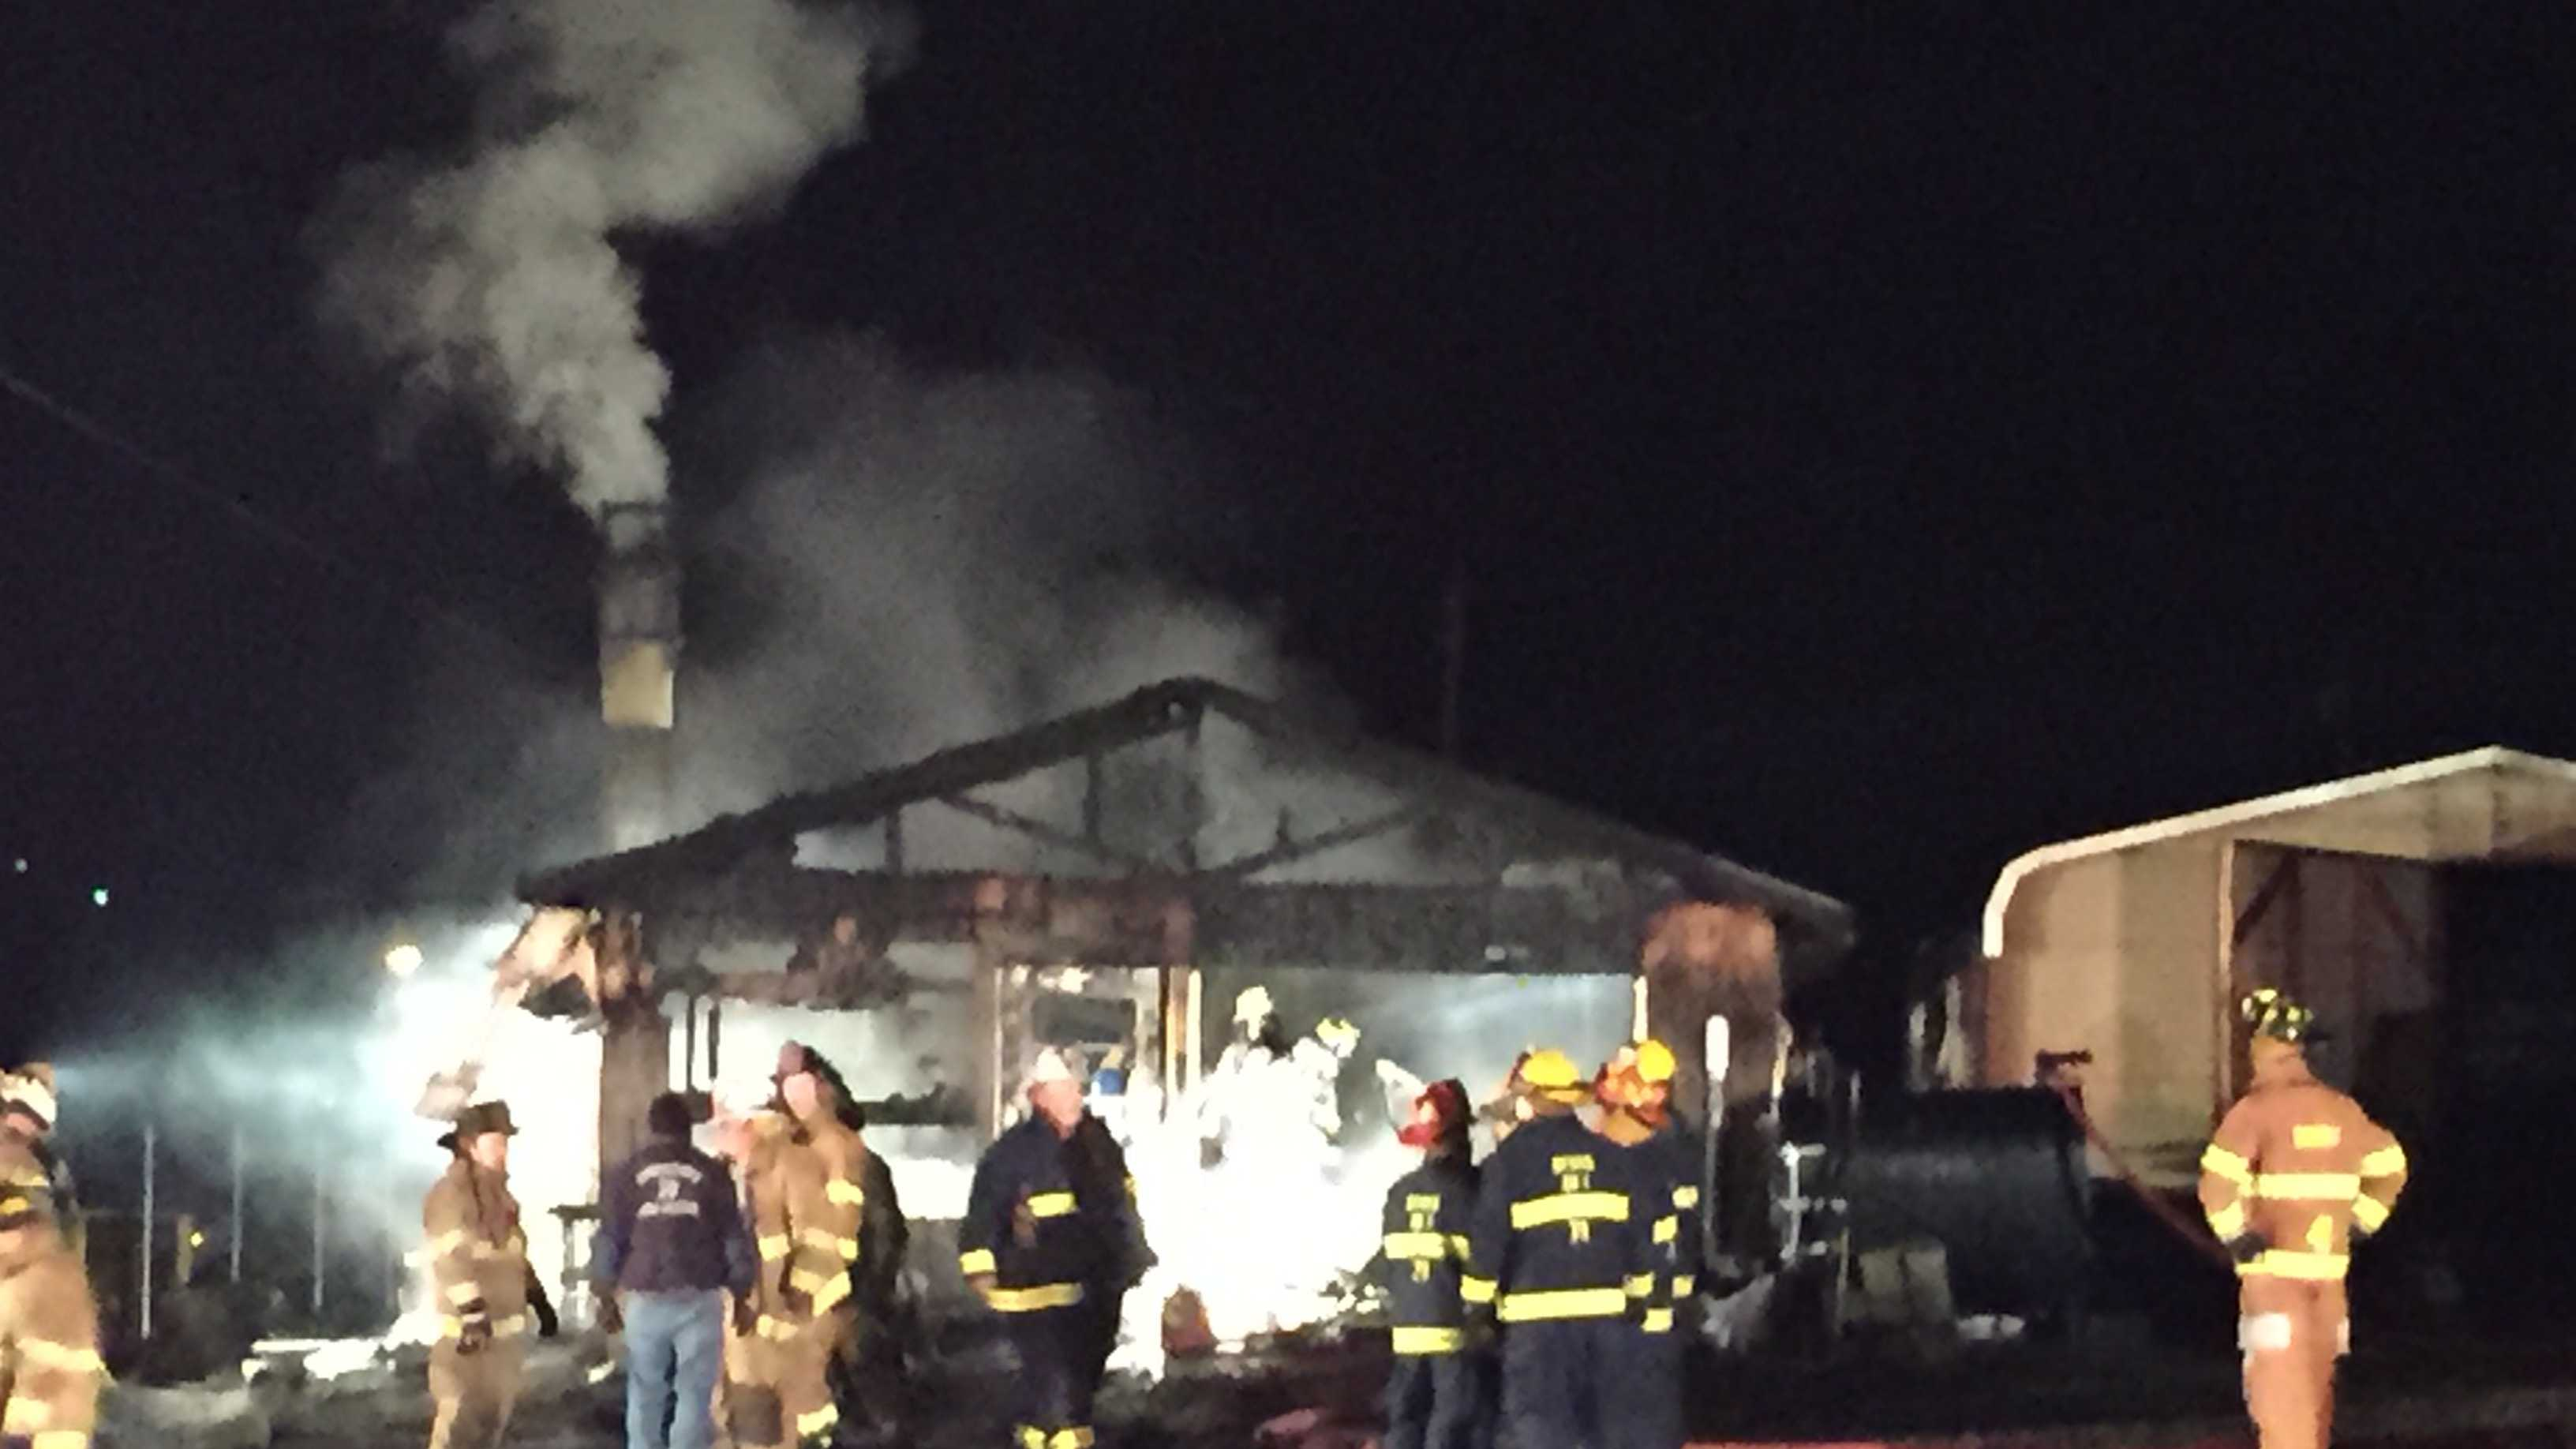 Crews responded to a fire at a greenhouse in Derry Township early Thursday morning.